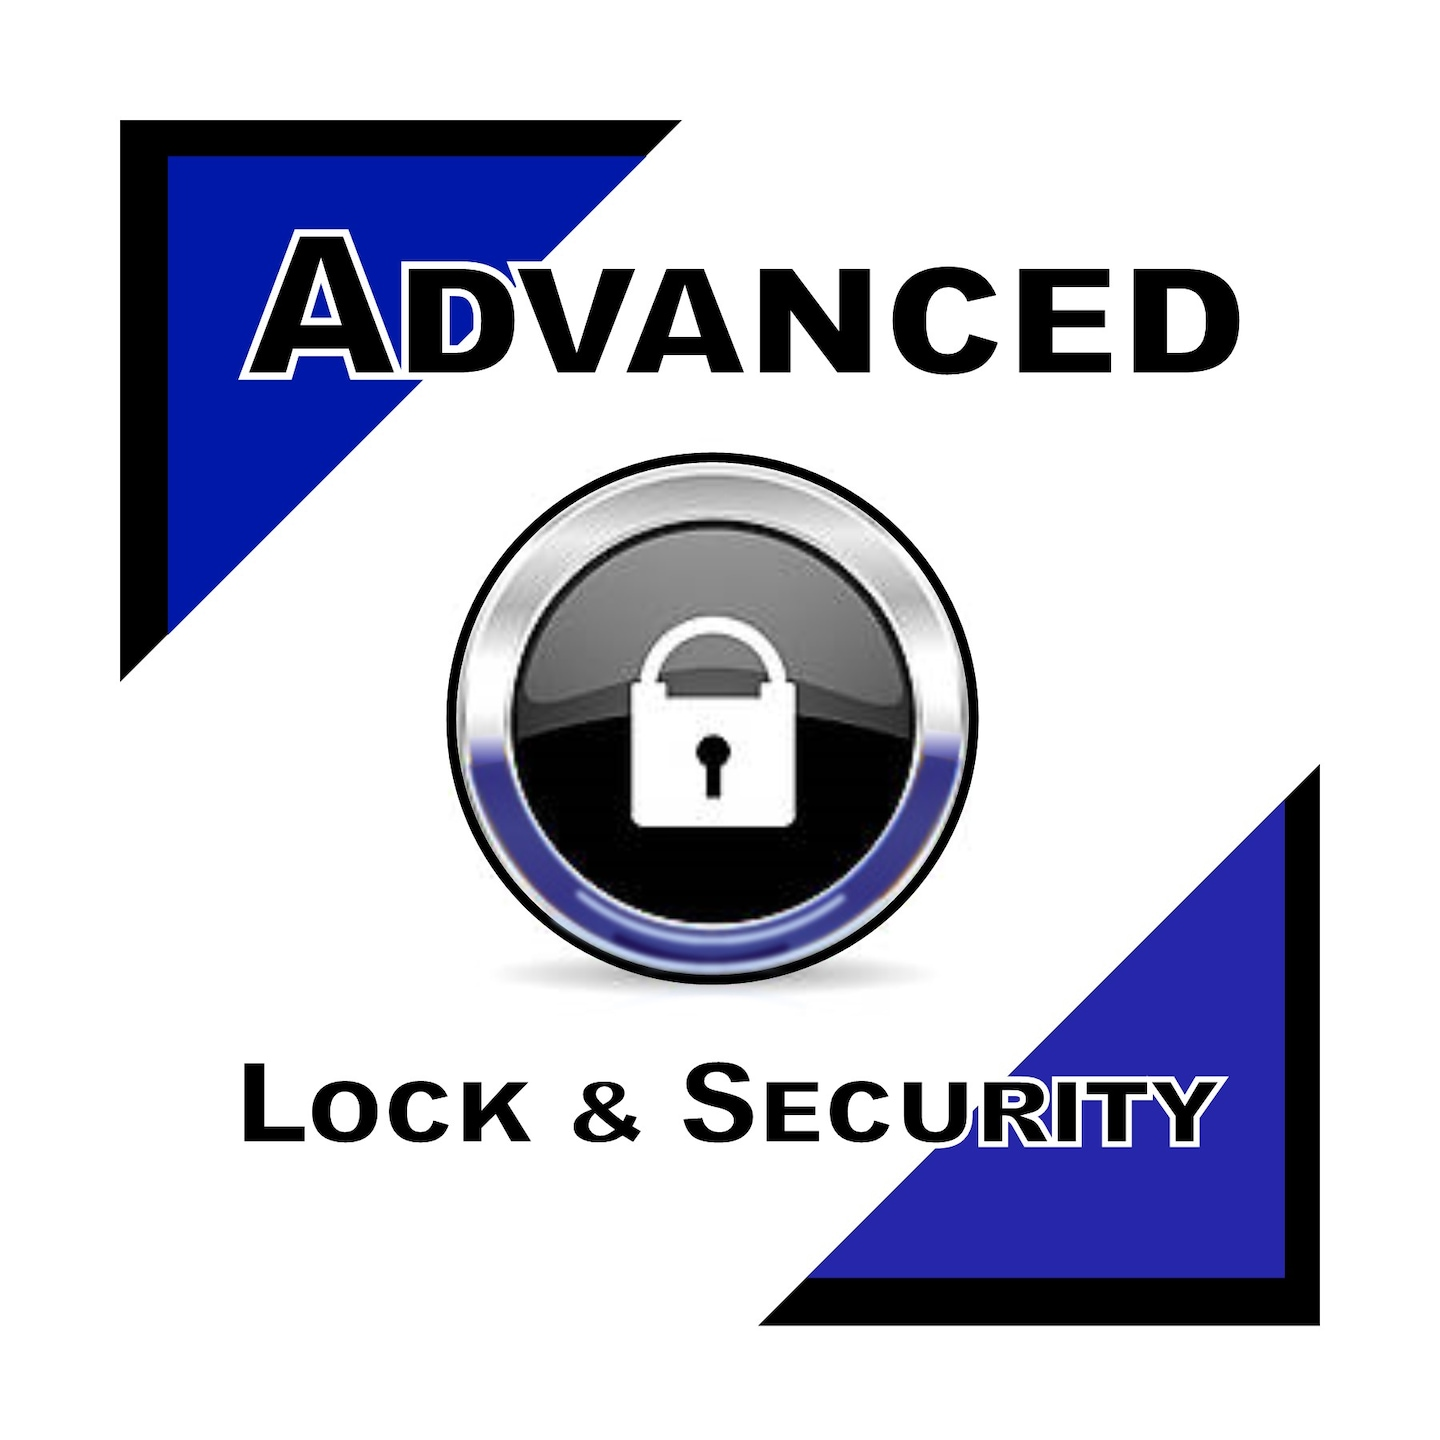 Advanced Lock & Security